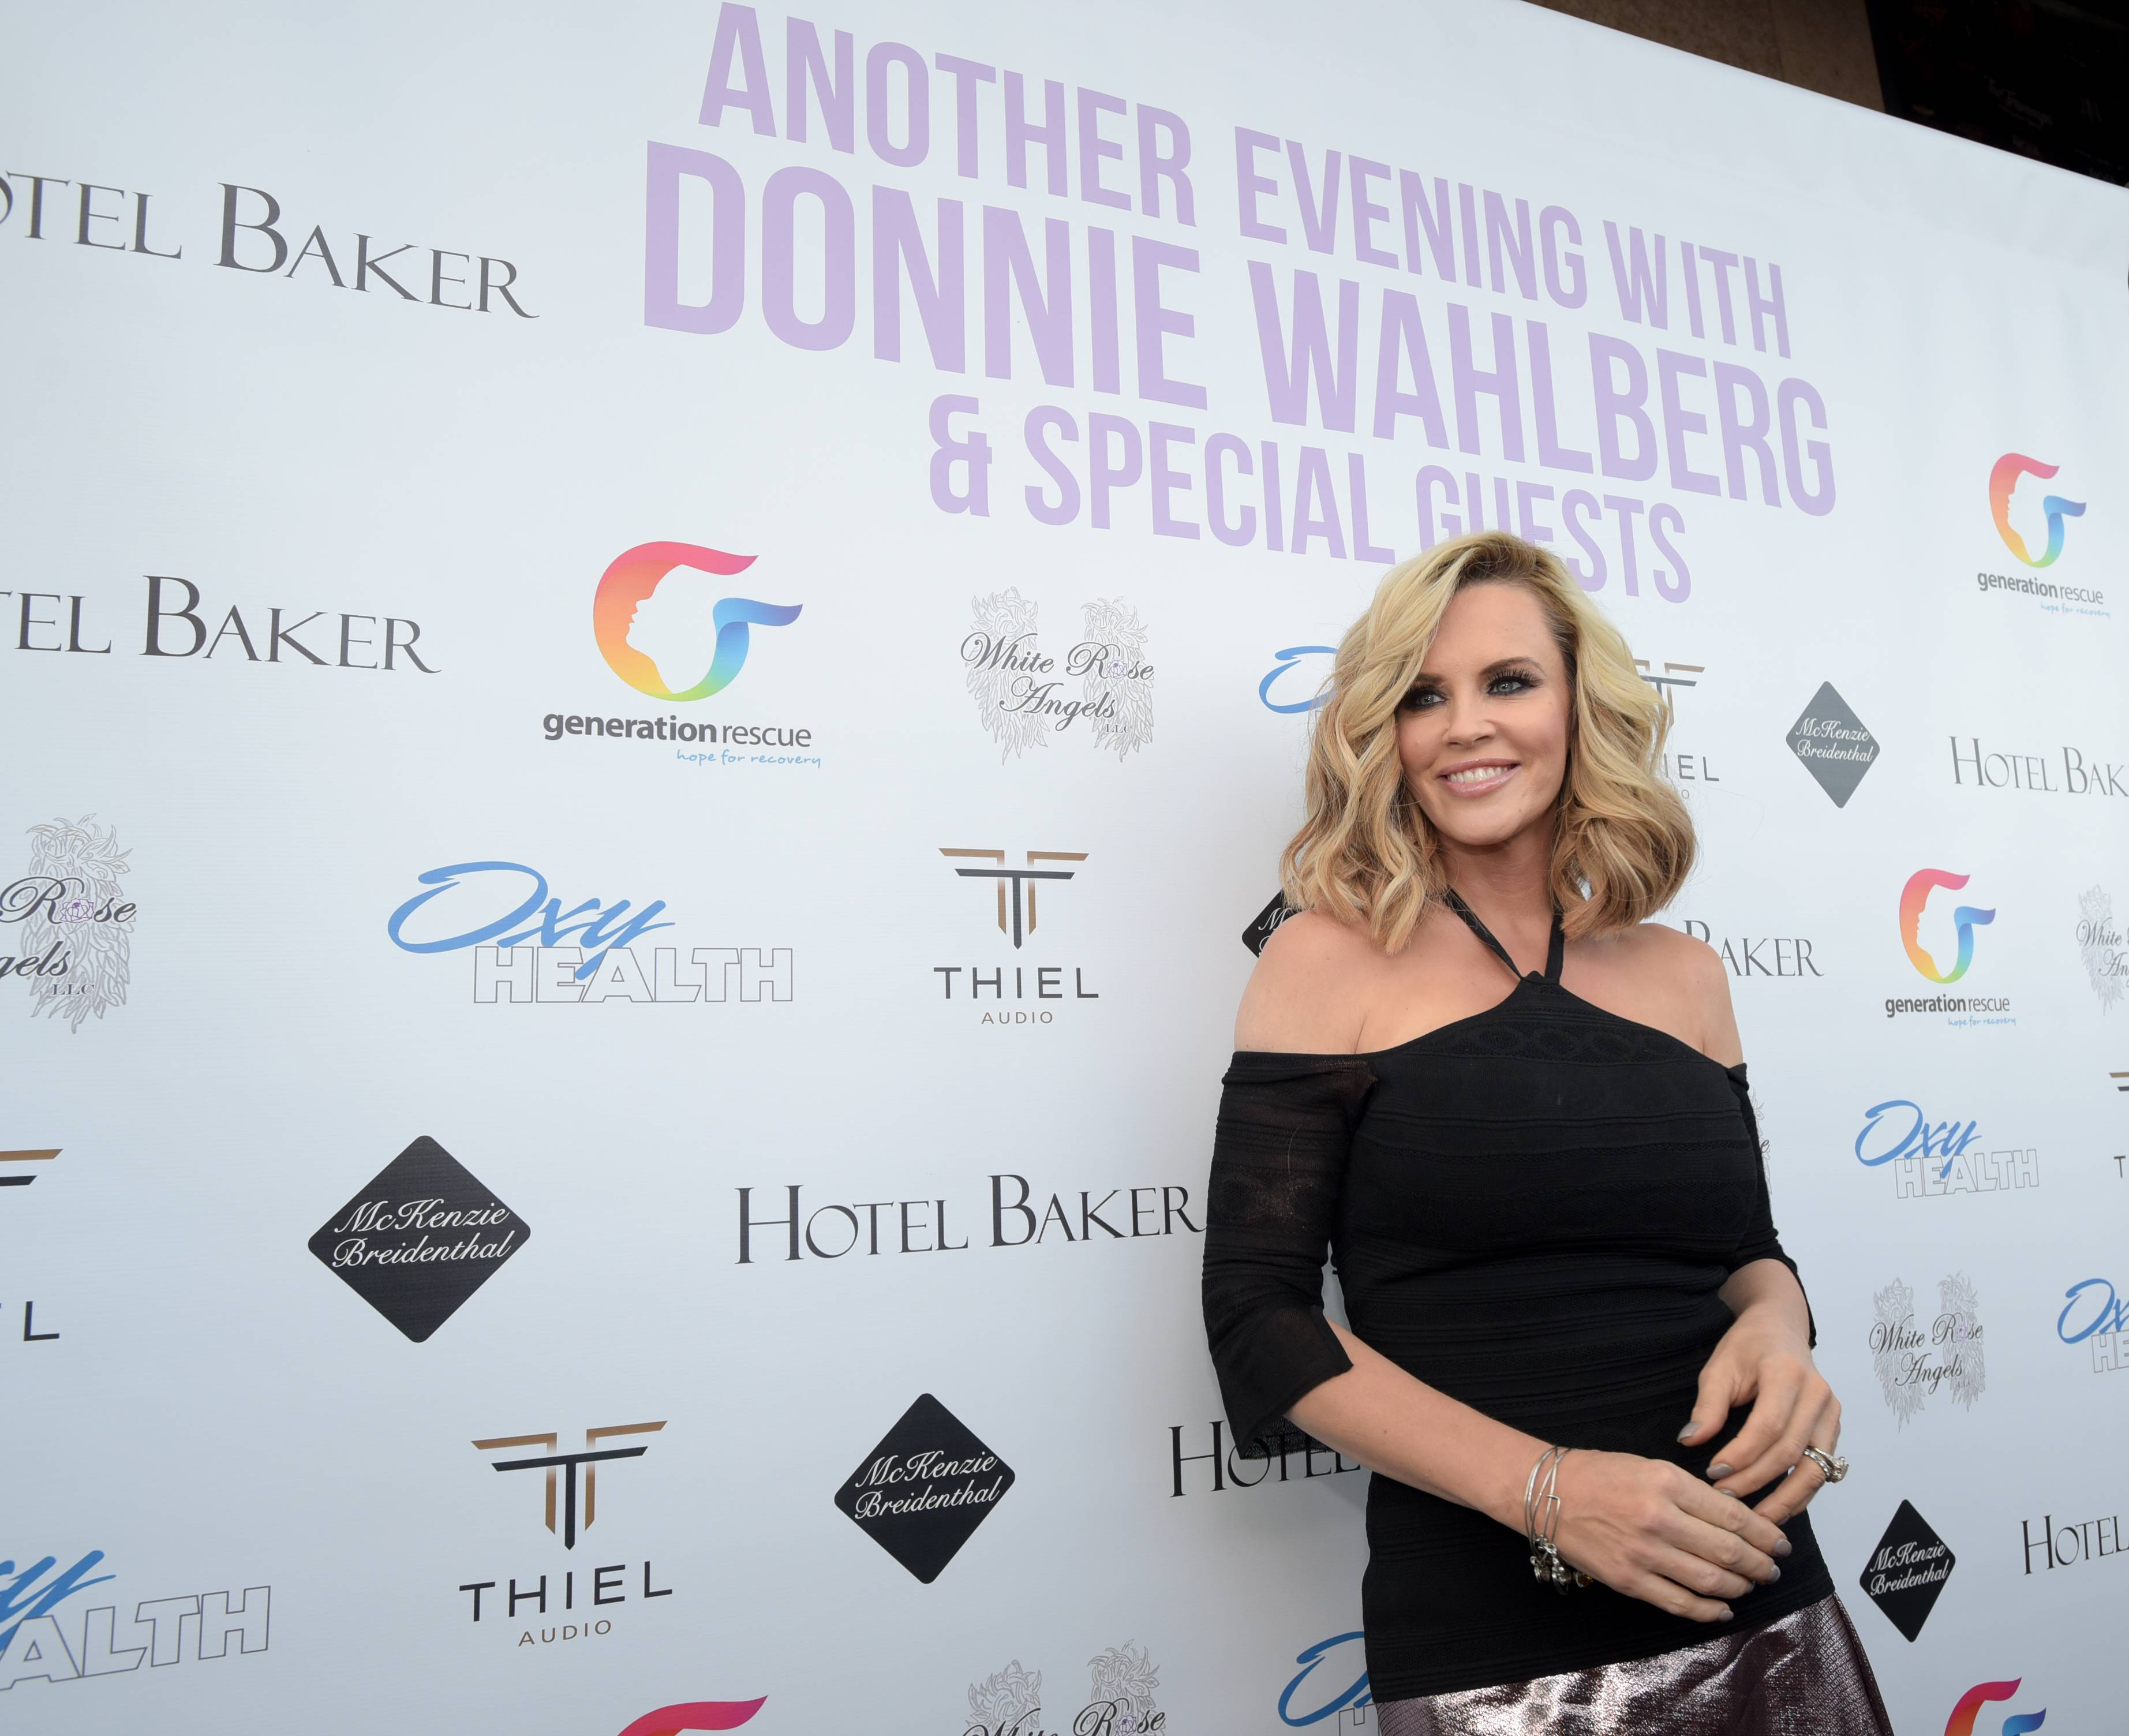 Jenny McCarthy poses on the red carpet Monday before her husband Donnie Wahlberg performs a concert in St. Charles at the Arcada Theatre to raise money and awareness for Generation Rescue.